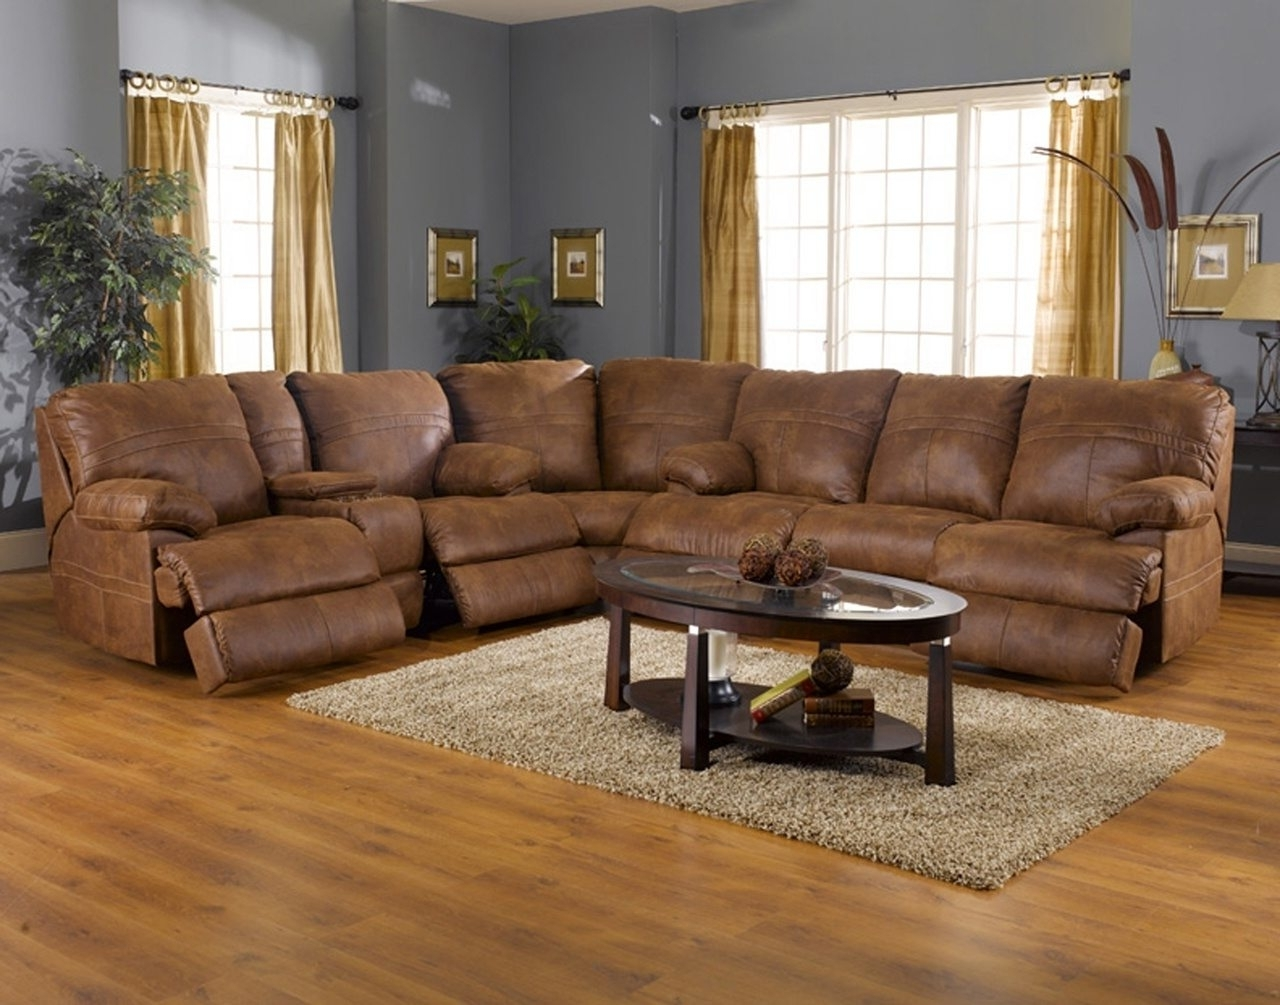 Preferred L Shaped Light Brown Leather Reclining Sectional With Oval Coffee In Leather Recliner Sectional Sofas (View 7 of 15)